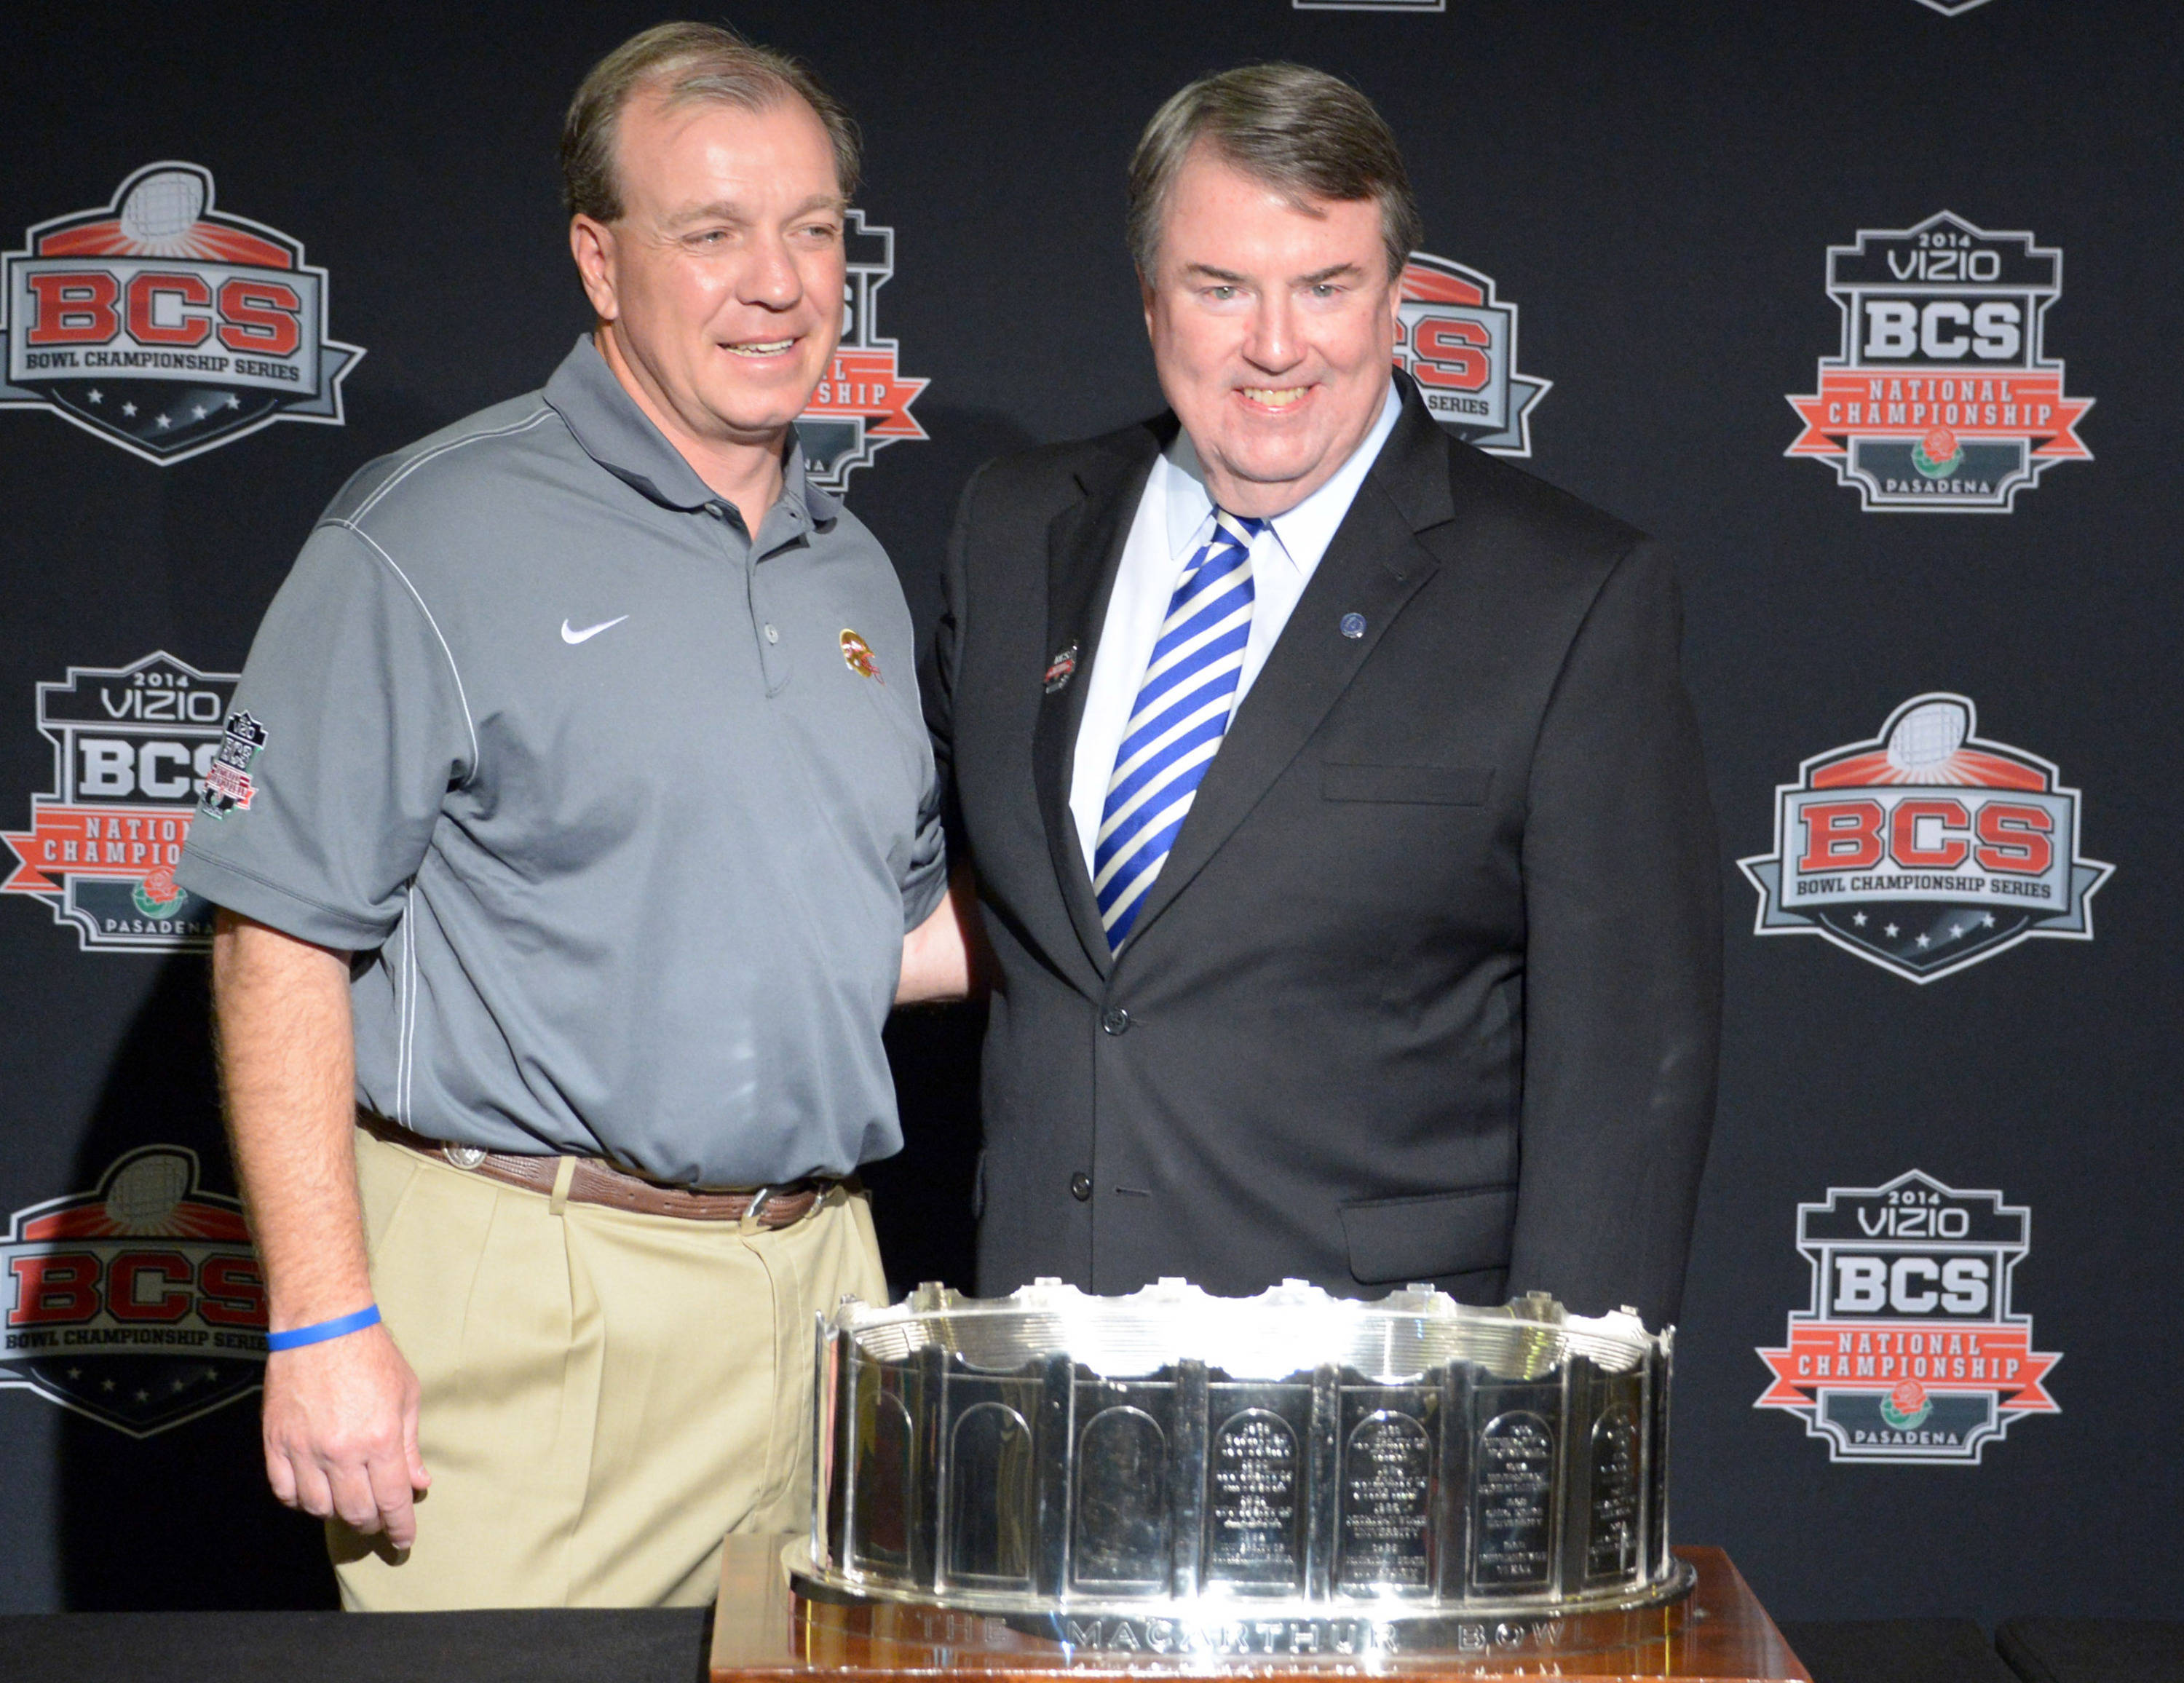 Florida State Seminoles coach Jimbo Fisher (left) is presented by MacArthur Bowl trophy by National Football Foundation president Steve Hatchell at 2014 BCS National Championship press conference at Newport Beach Marriott. Mandatory Credit: Kirby Lee-USA TODAY Sports